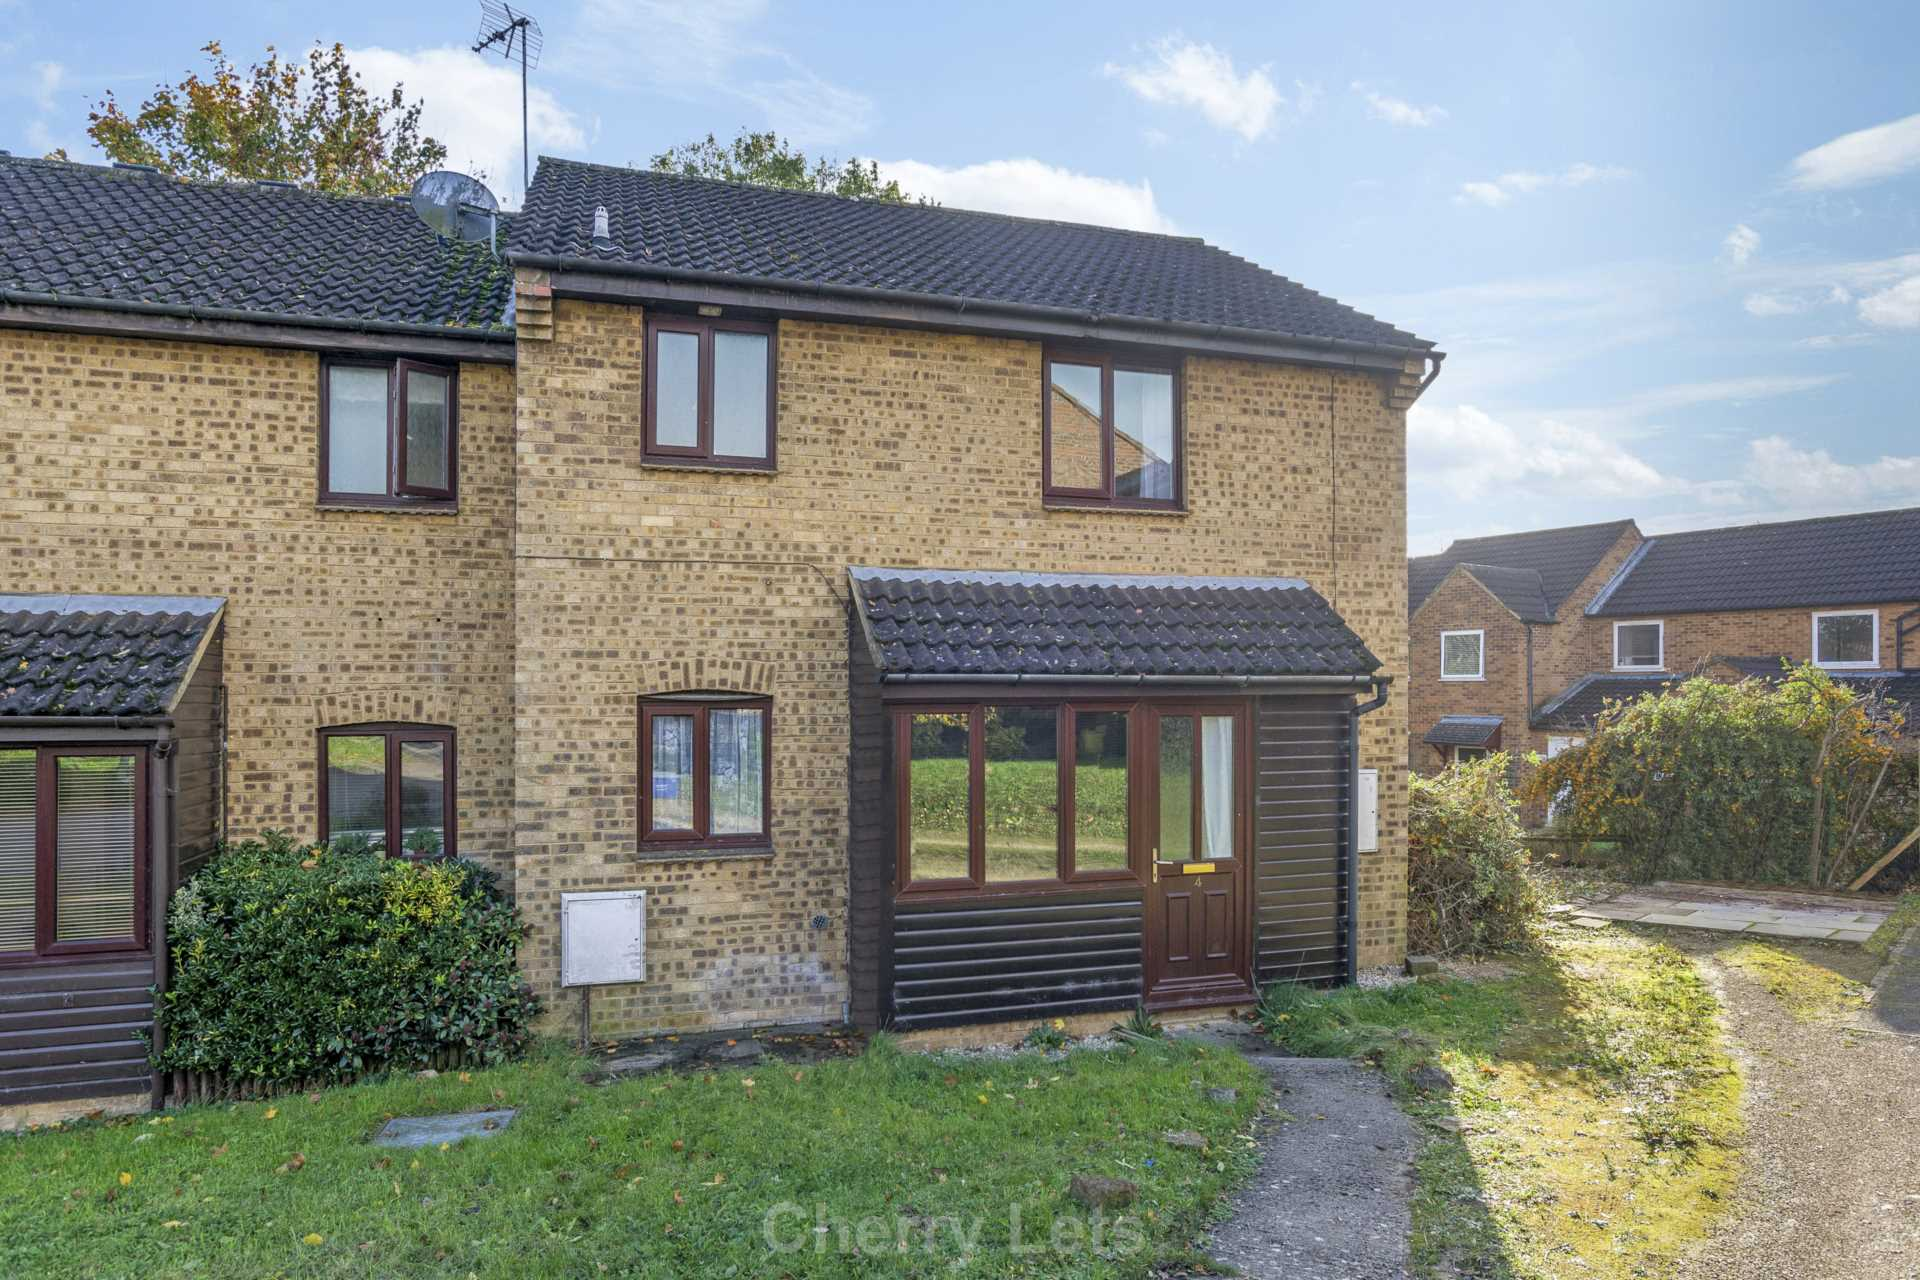 1 bed end of terrace house to rent in Bedford Close, Banbury, OX16  - Property Image 10